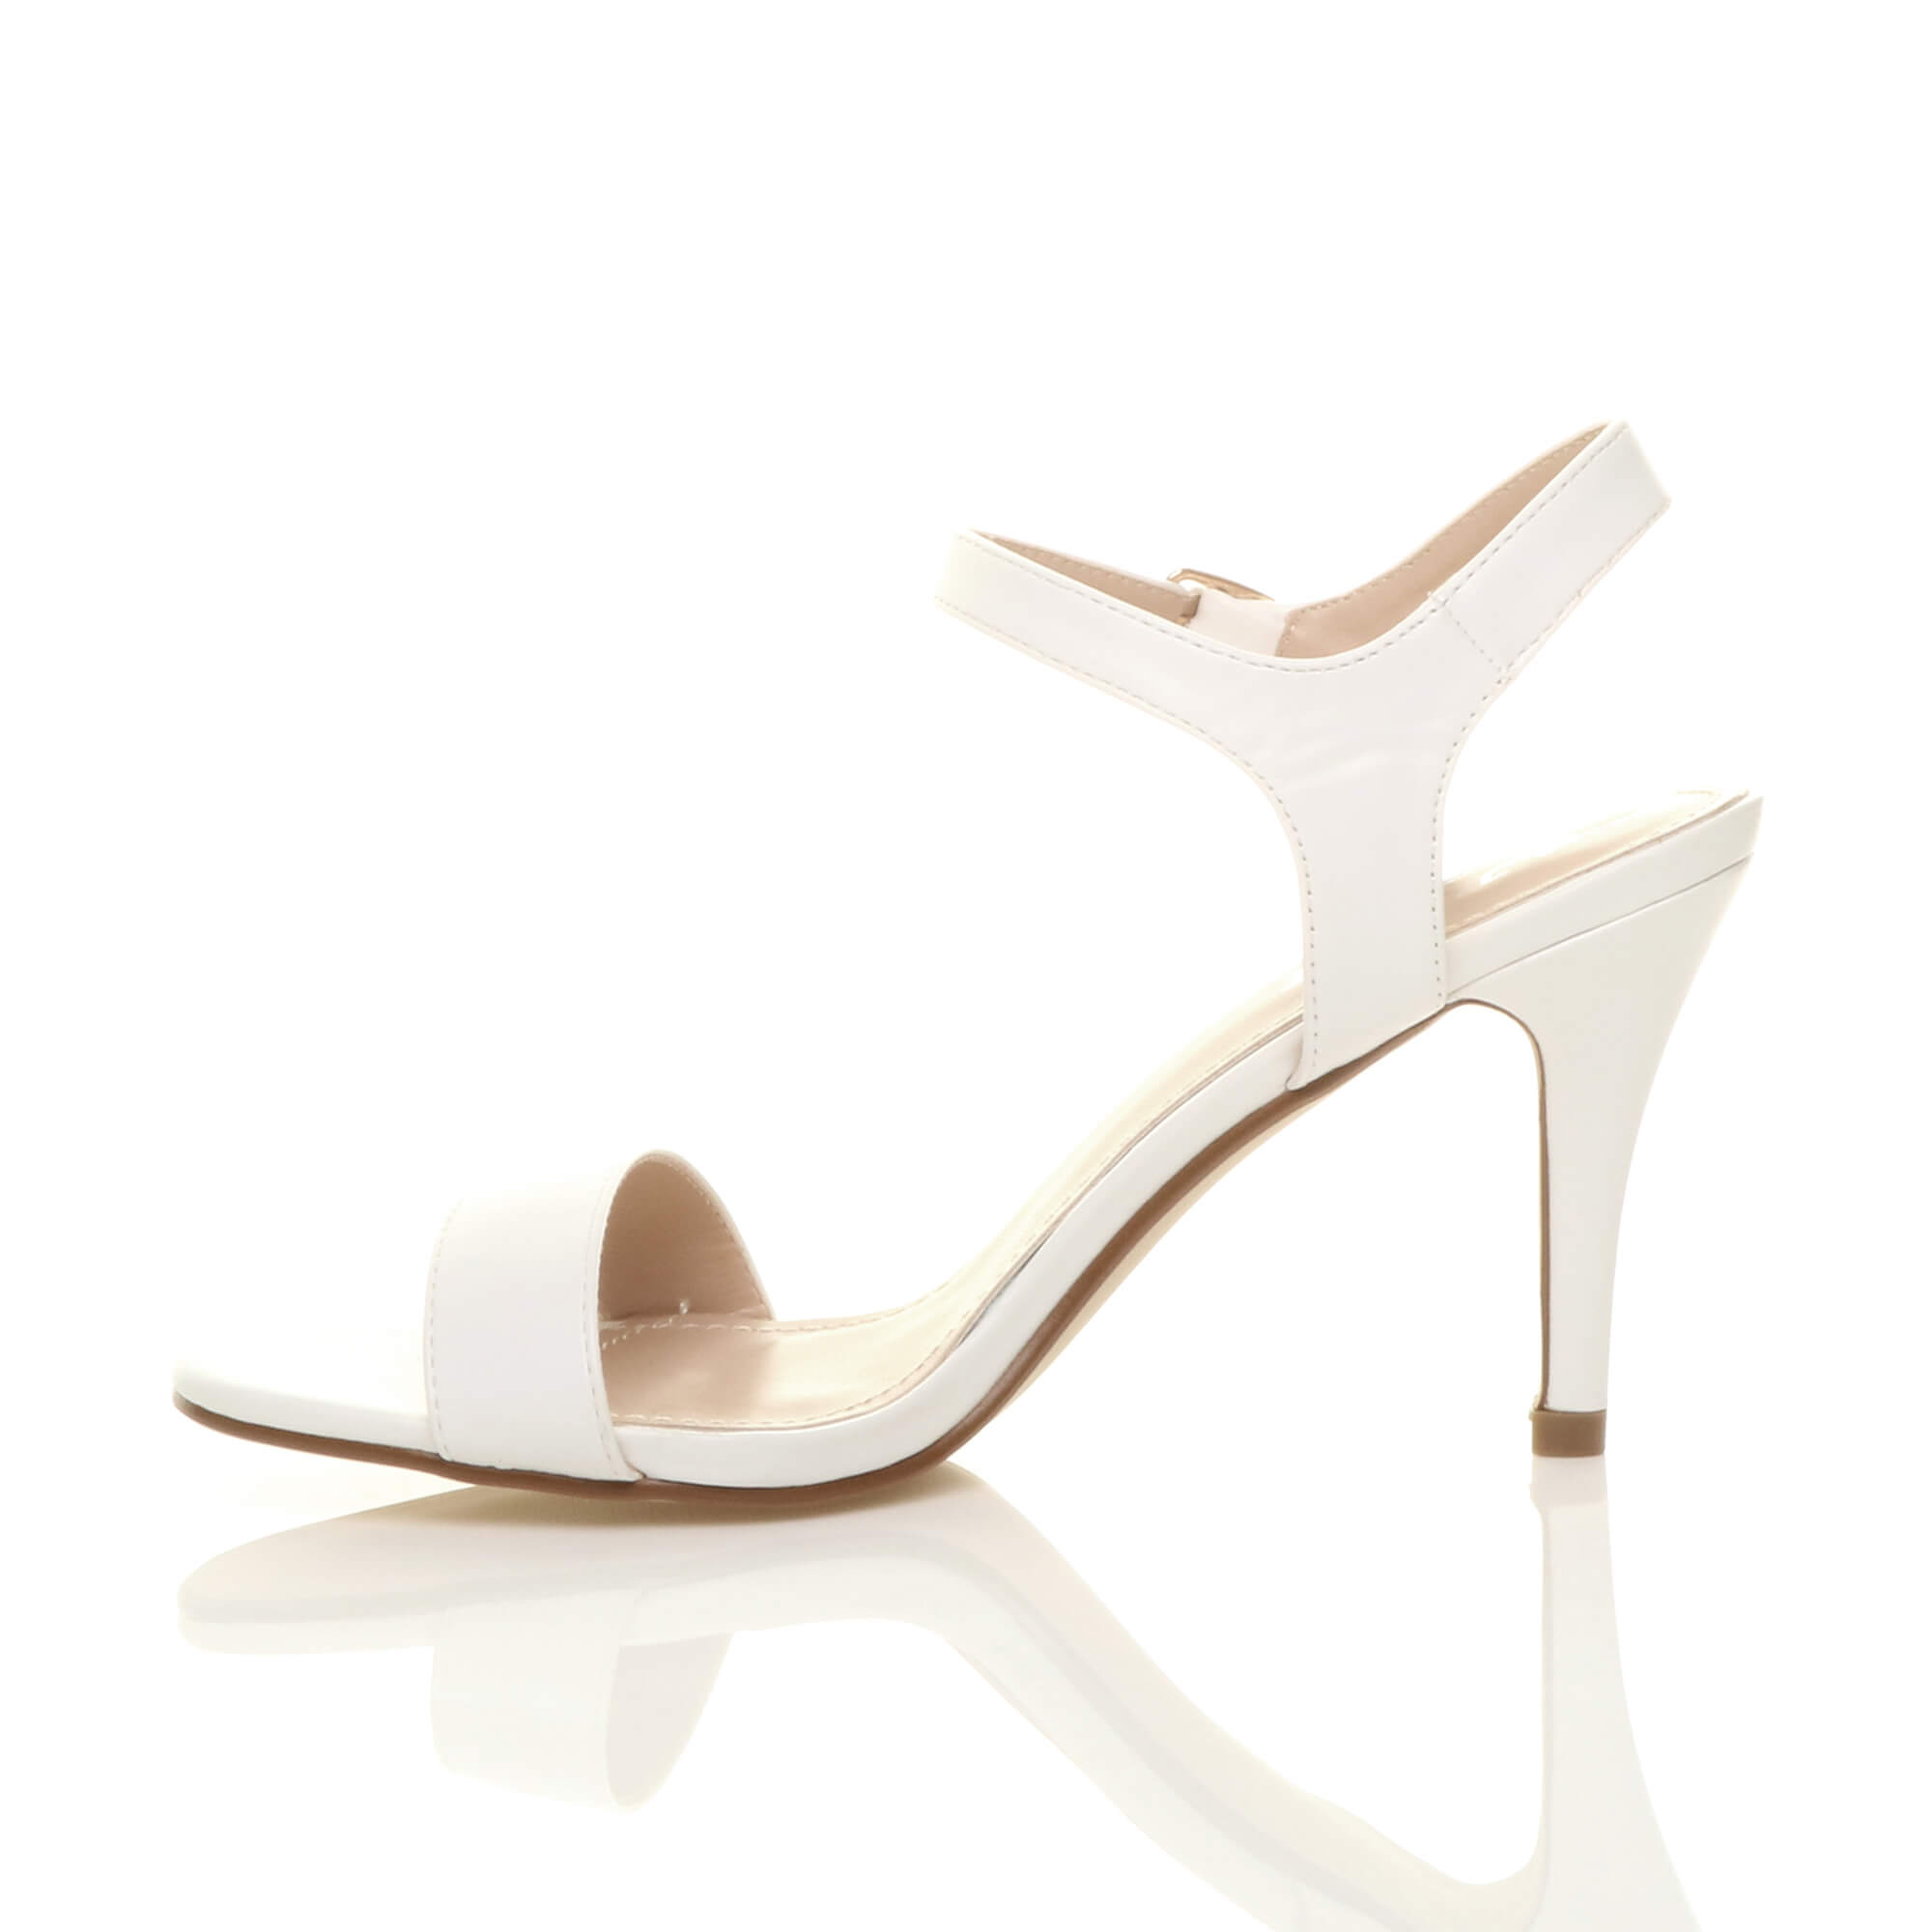 WOMENS-LADIES-HIGH-HEEL-BUCKLE-STRAPPY-BASIC-BARELY-THERE-SANDALS-SHOES-SIZE thumbnail 144